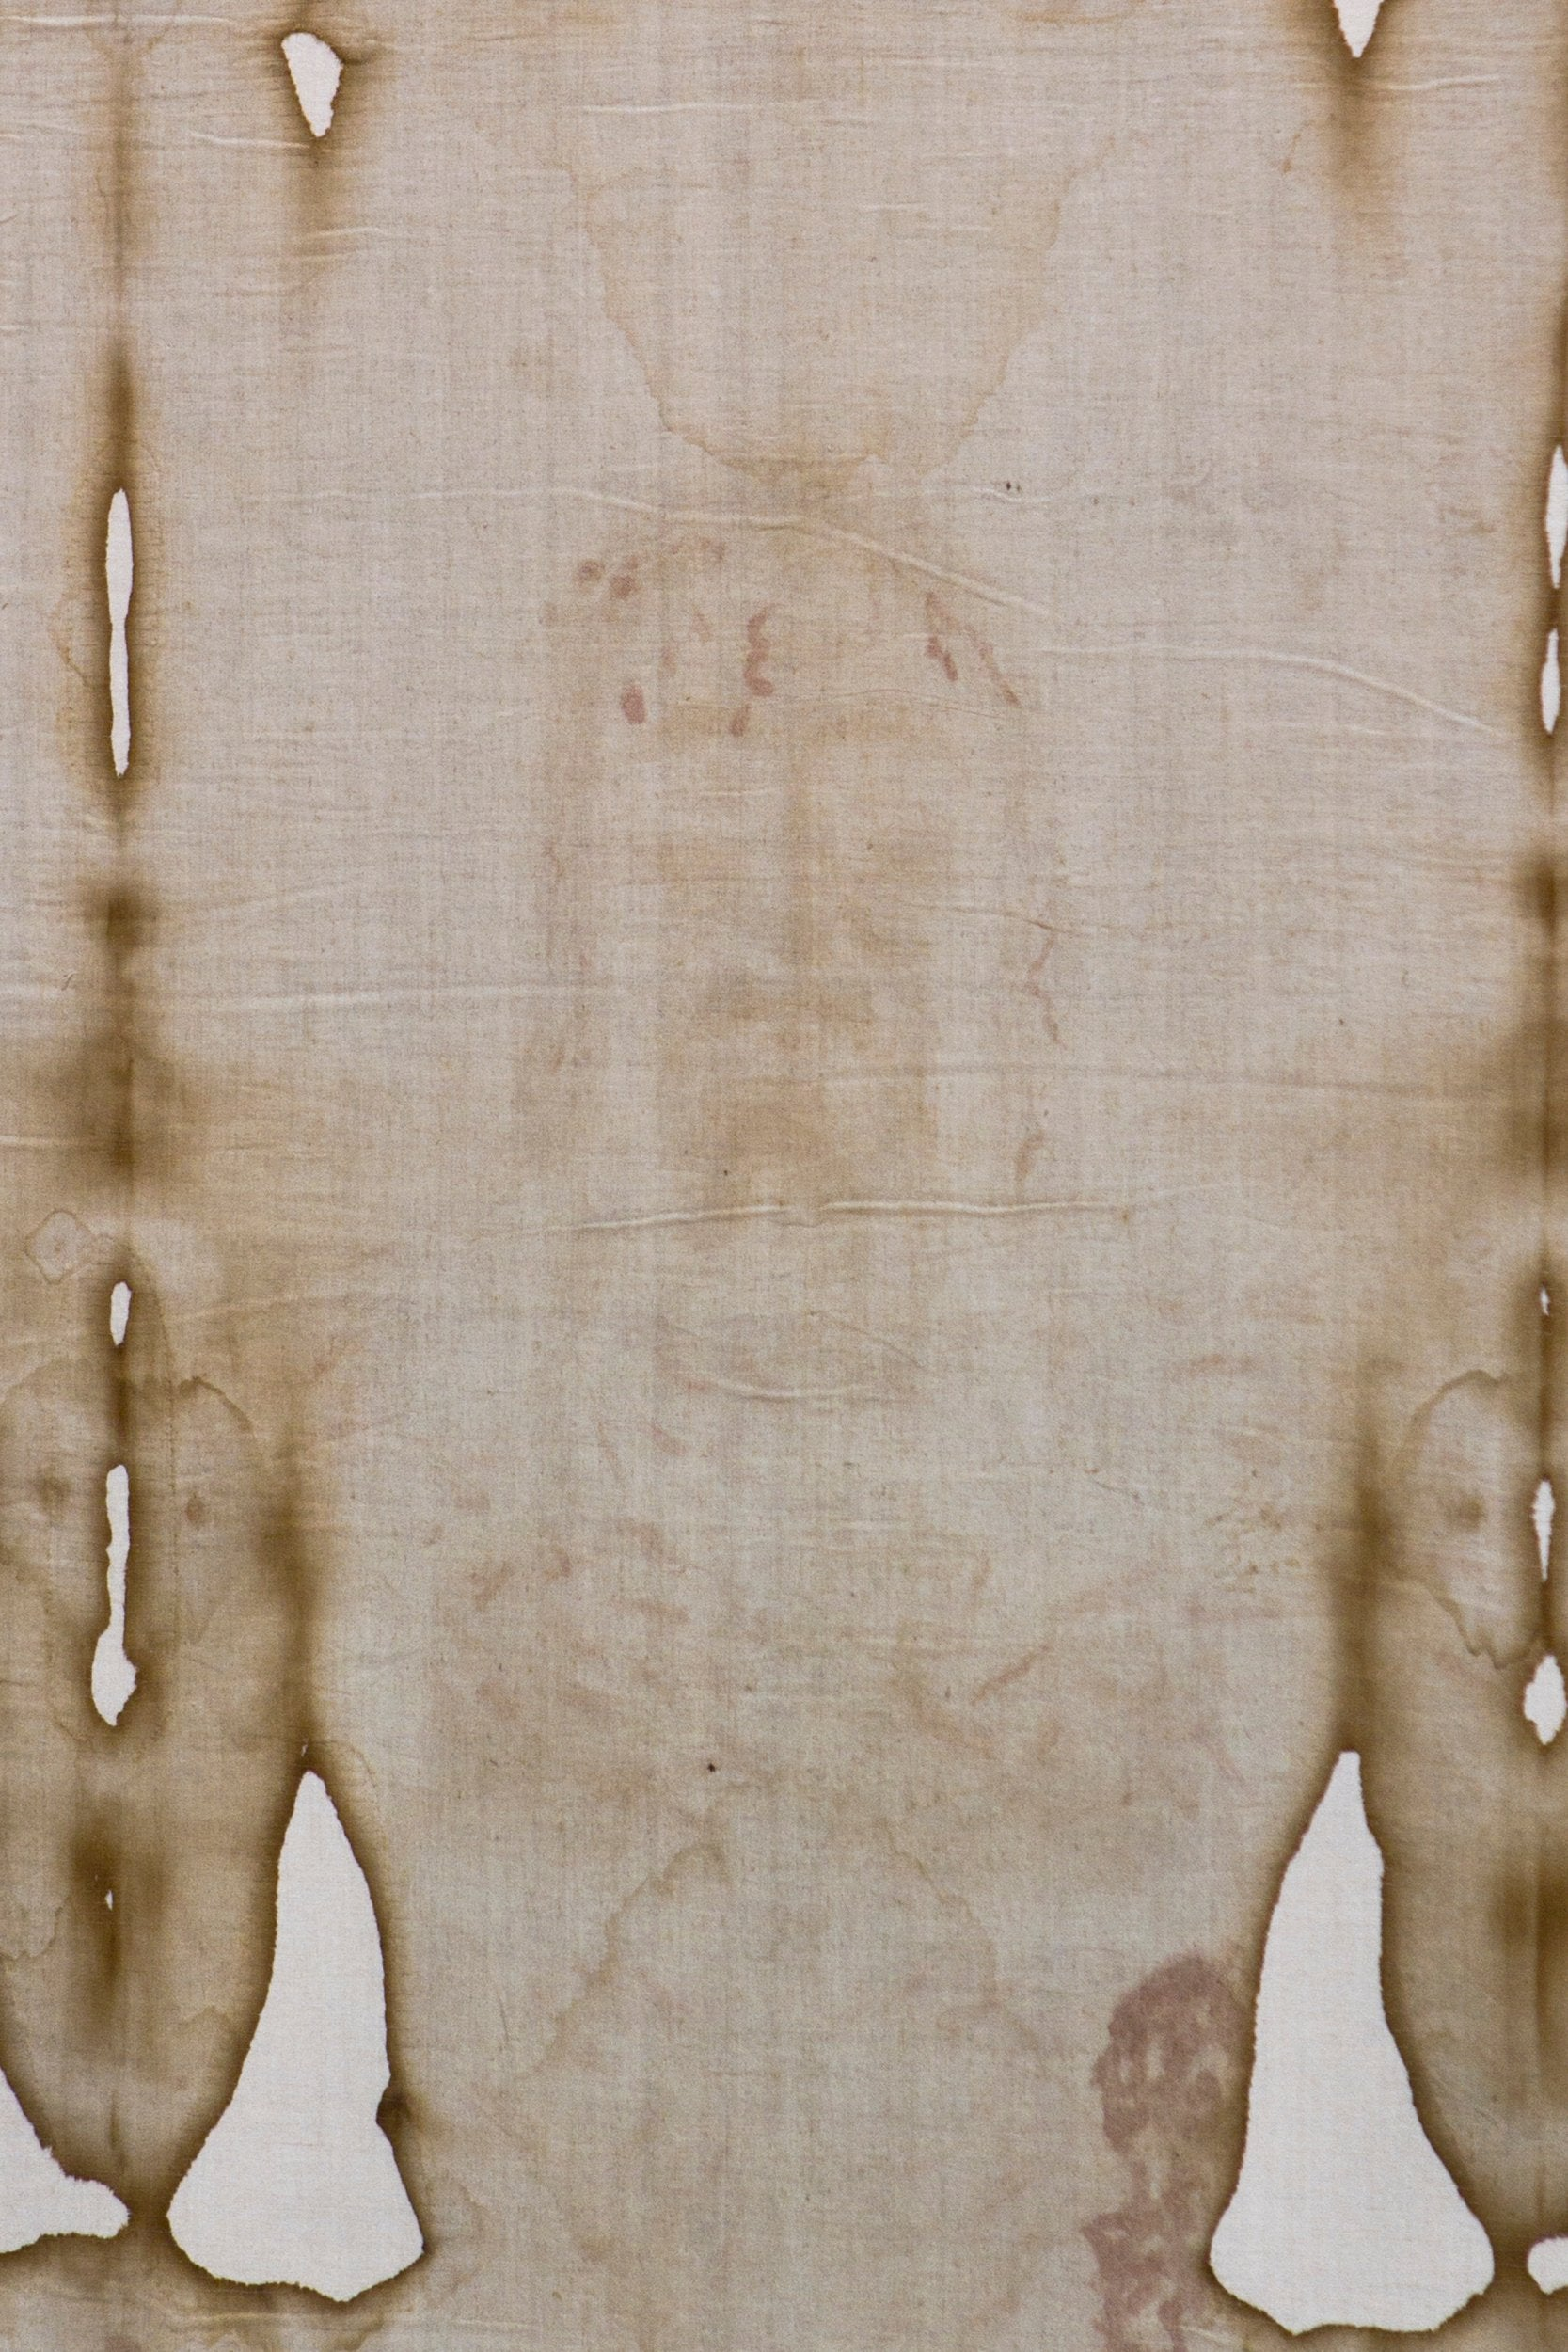 628-year-old fake news: Scientists prove Turin Shroud not